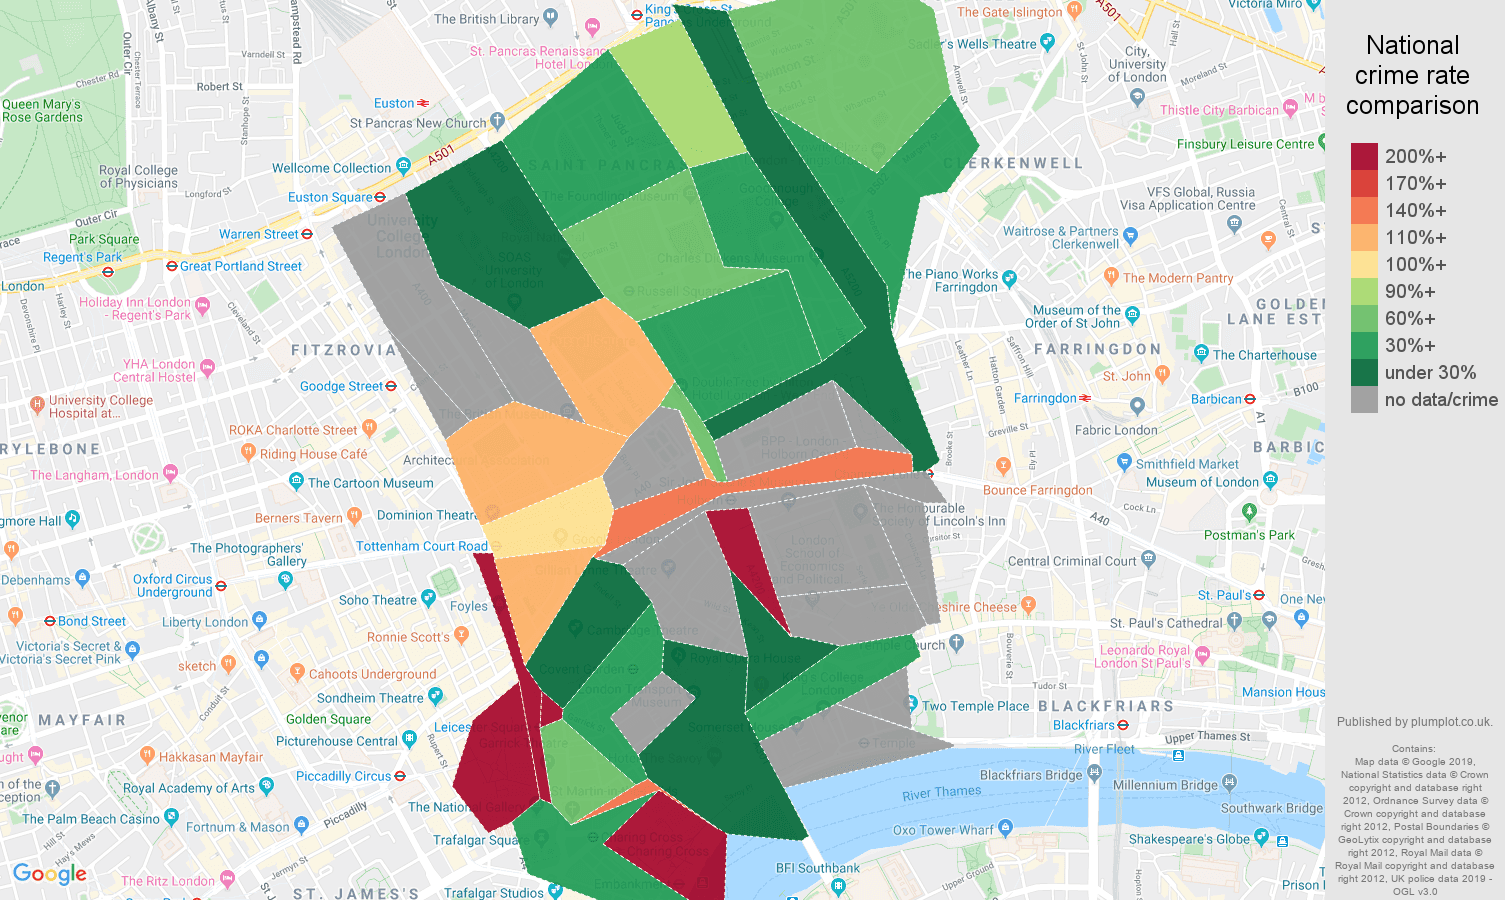 Western Central London possession of weapons crime rate comparison map